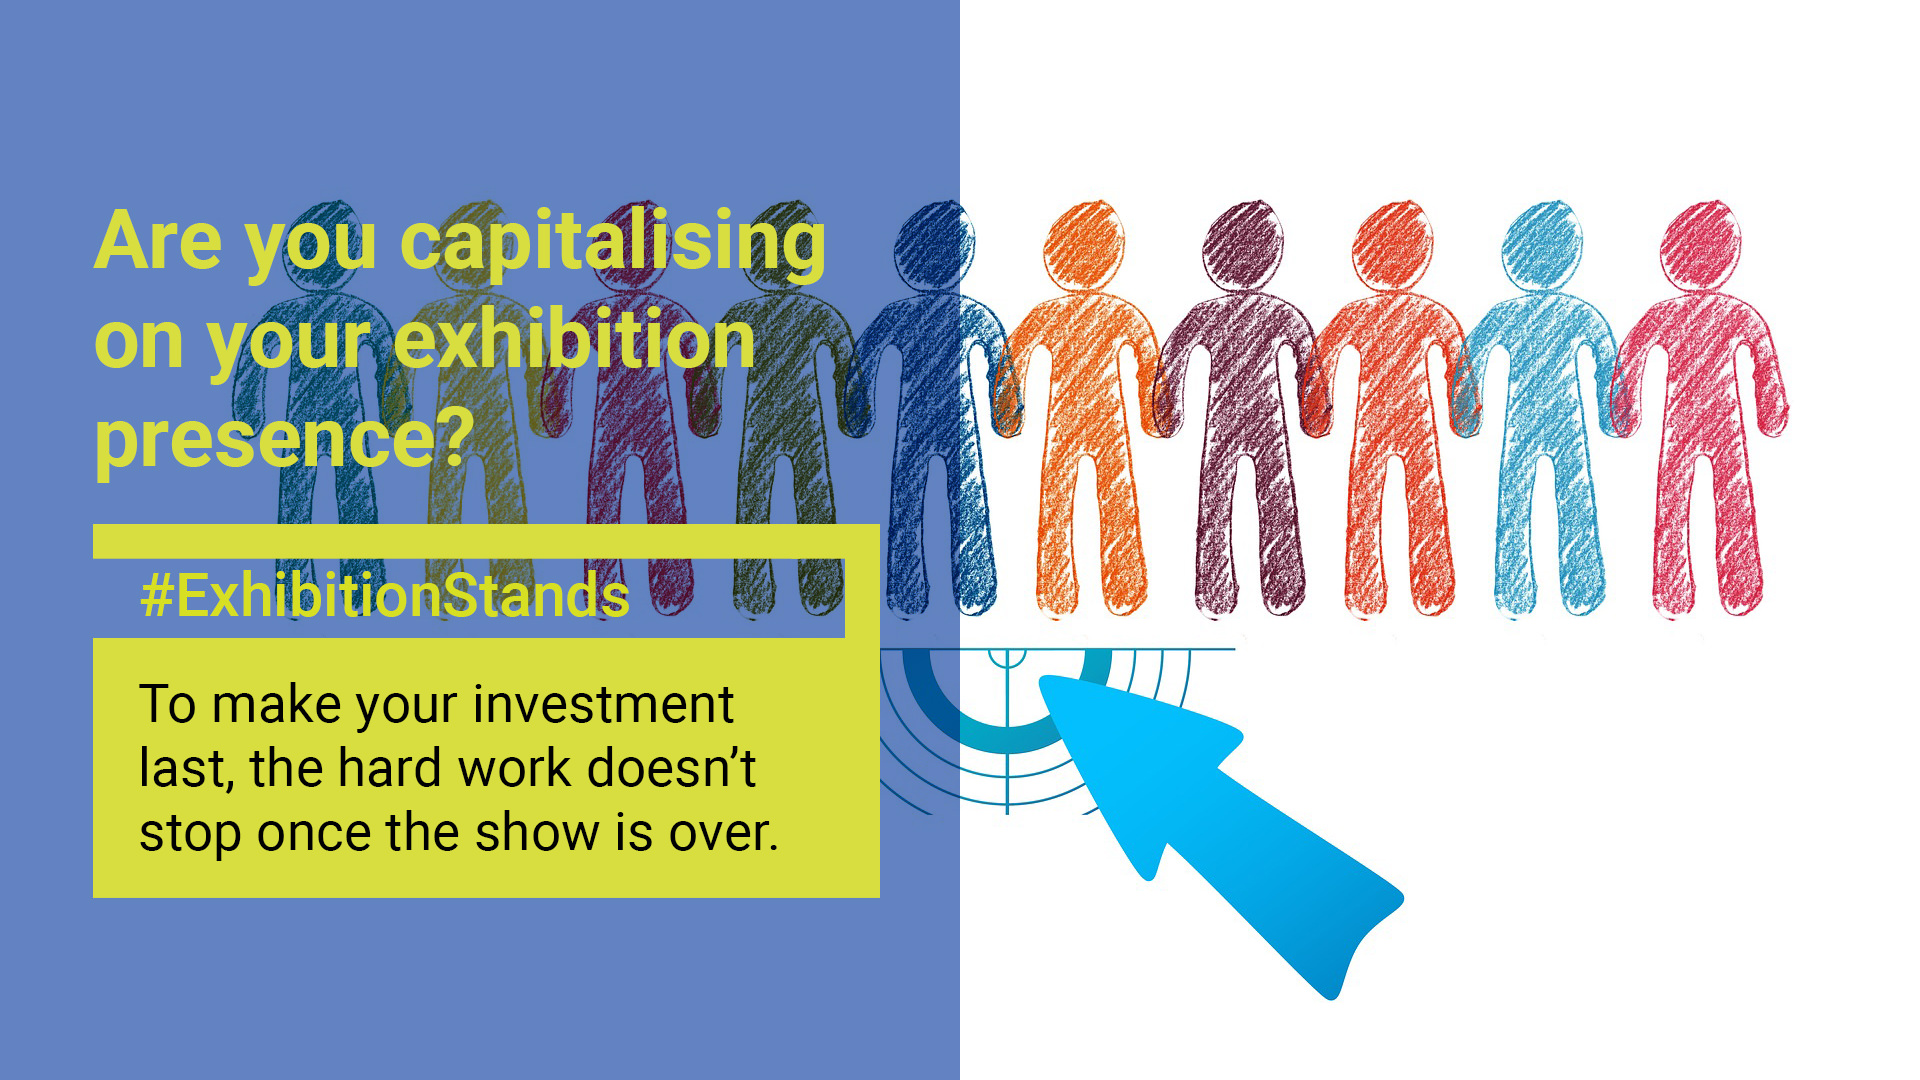 Are you capitalising on your exhibition presence?